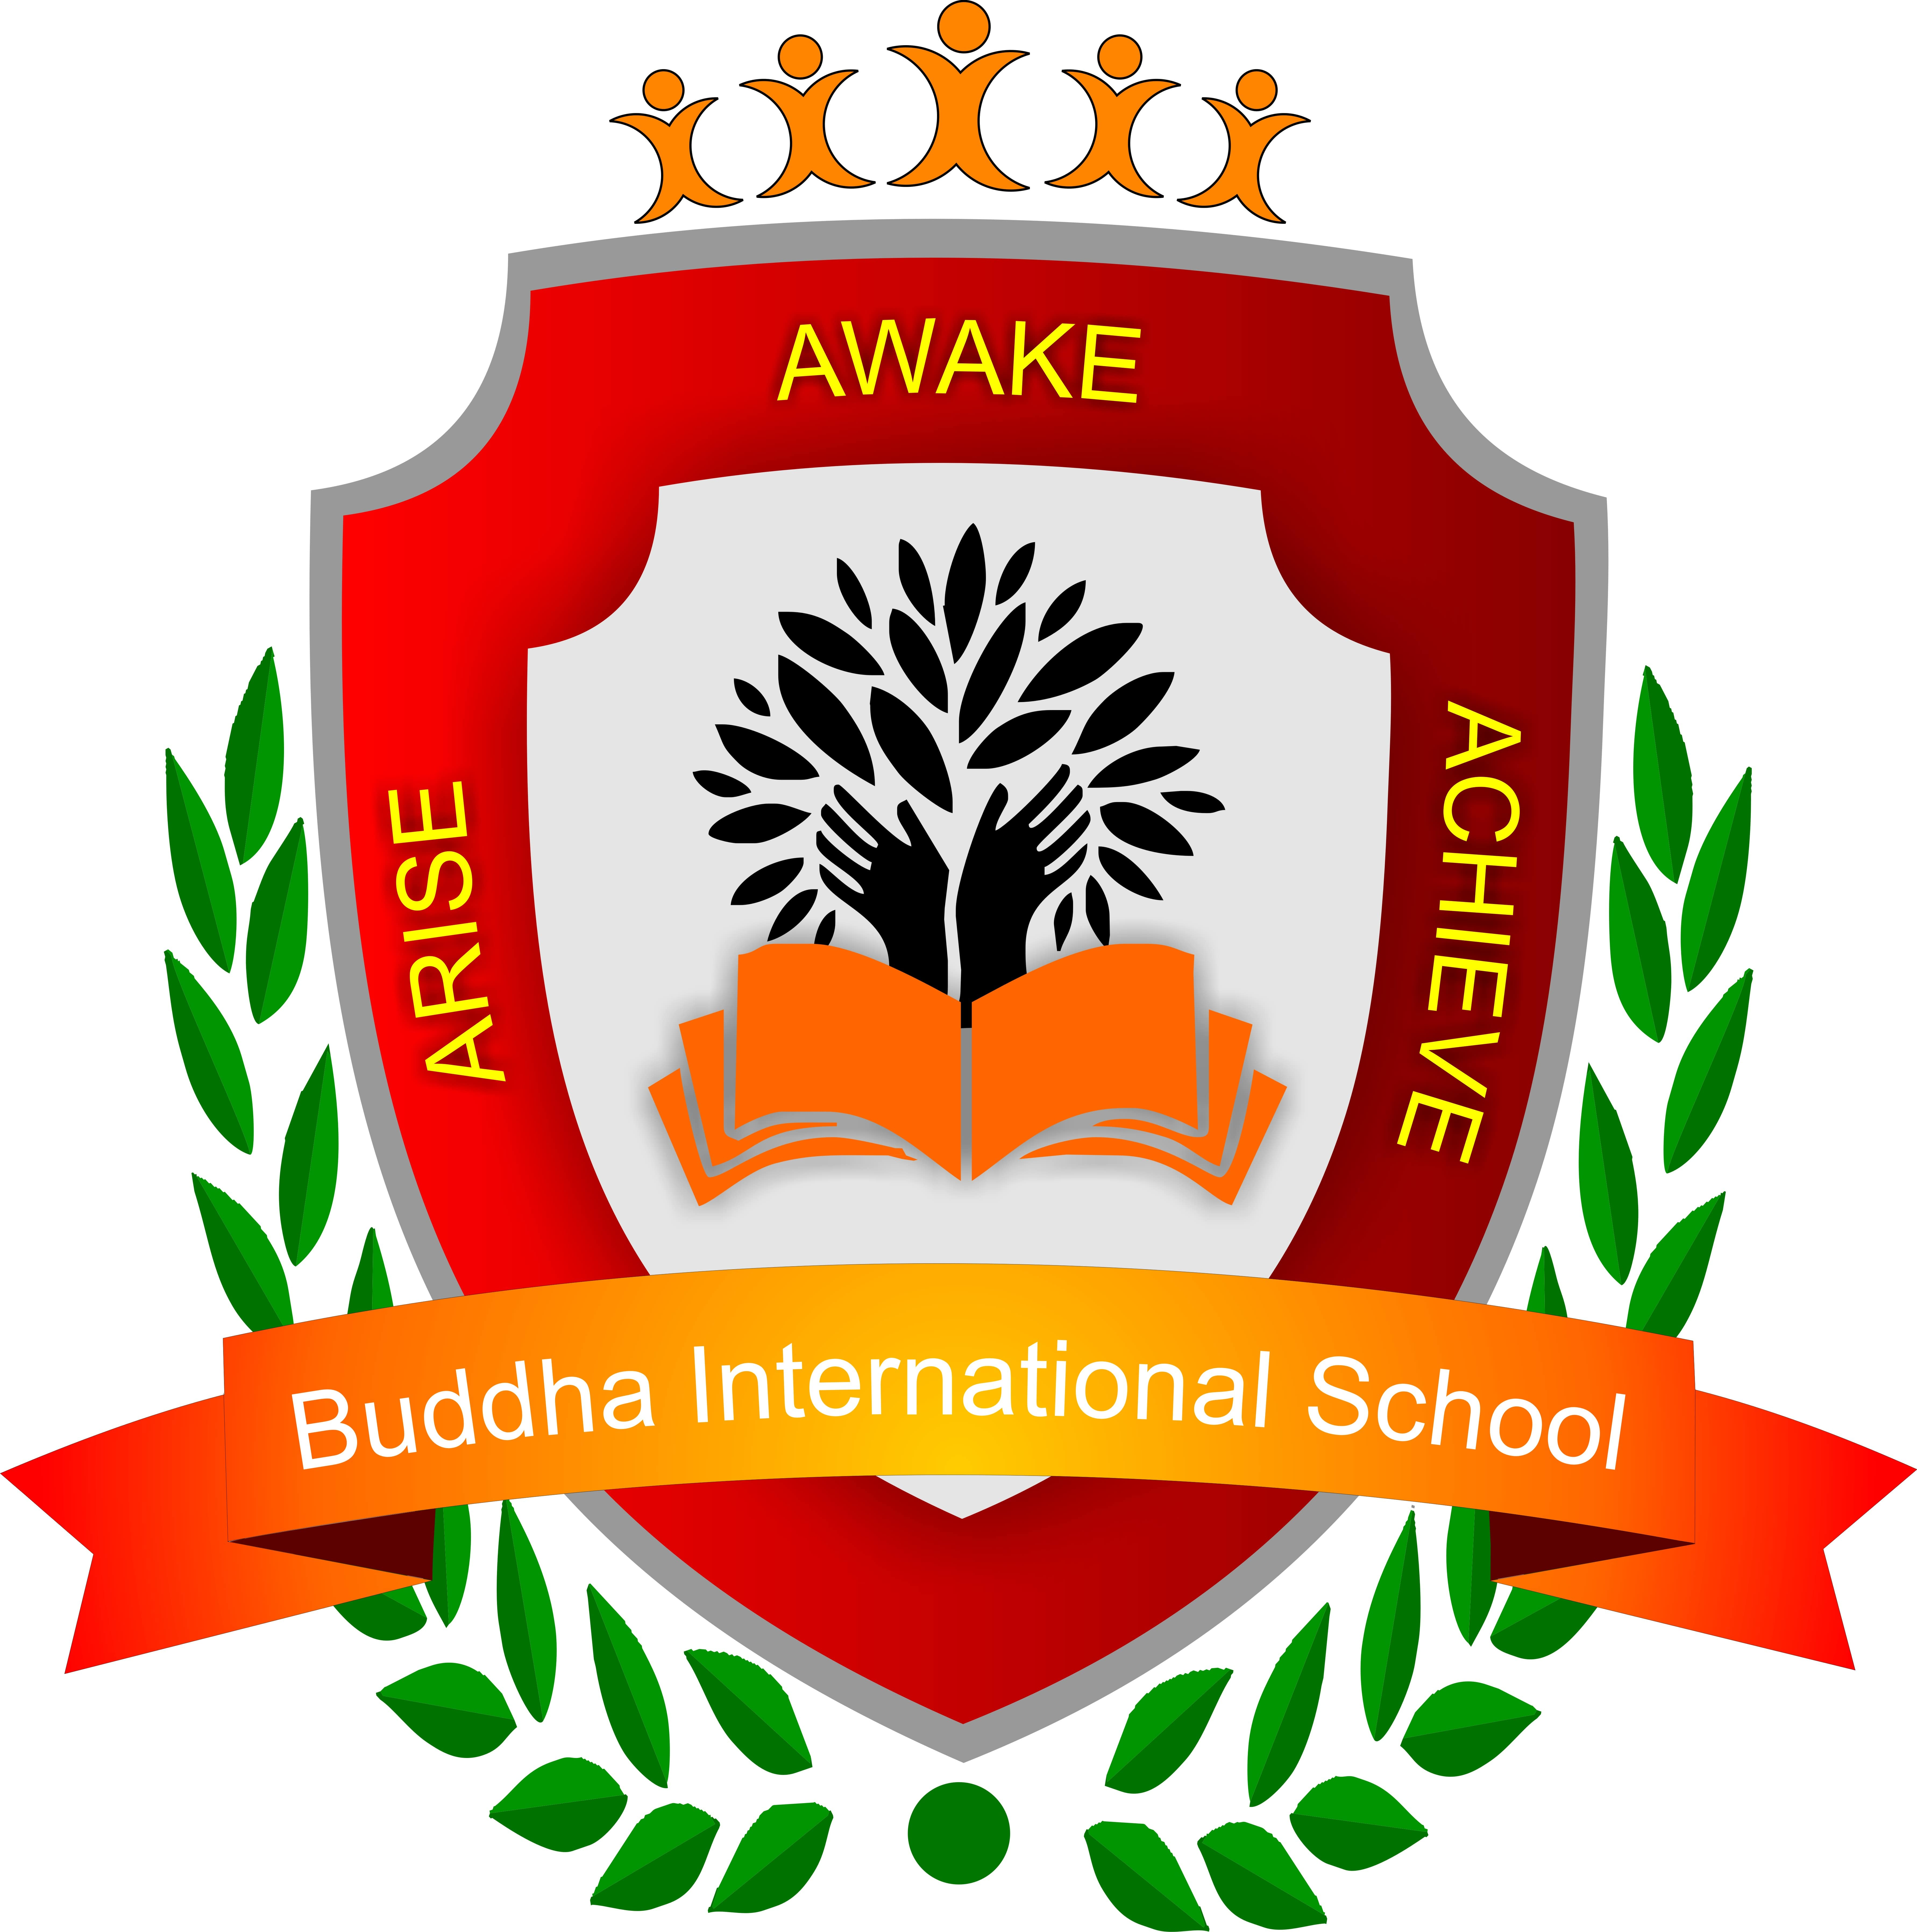 Buddha International School